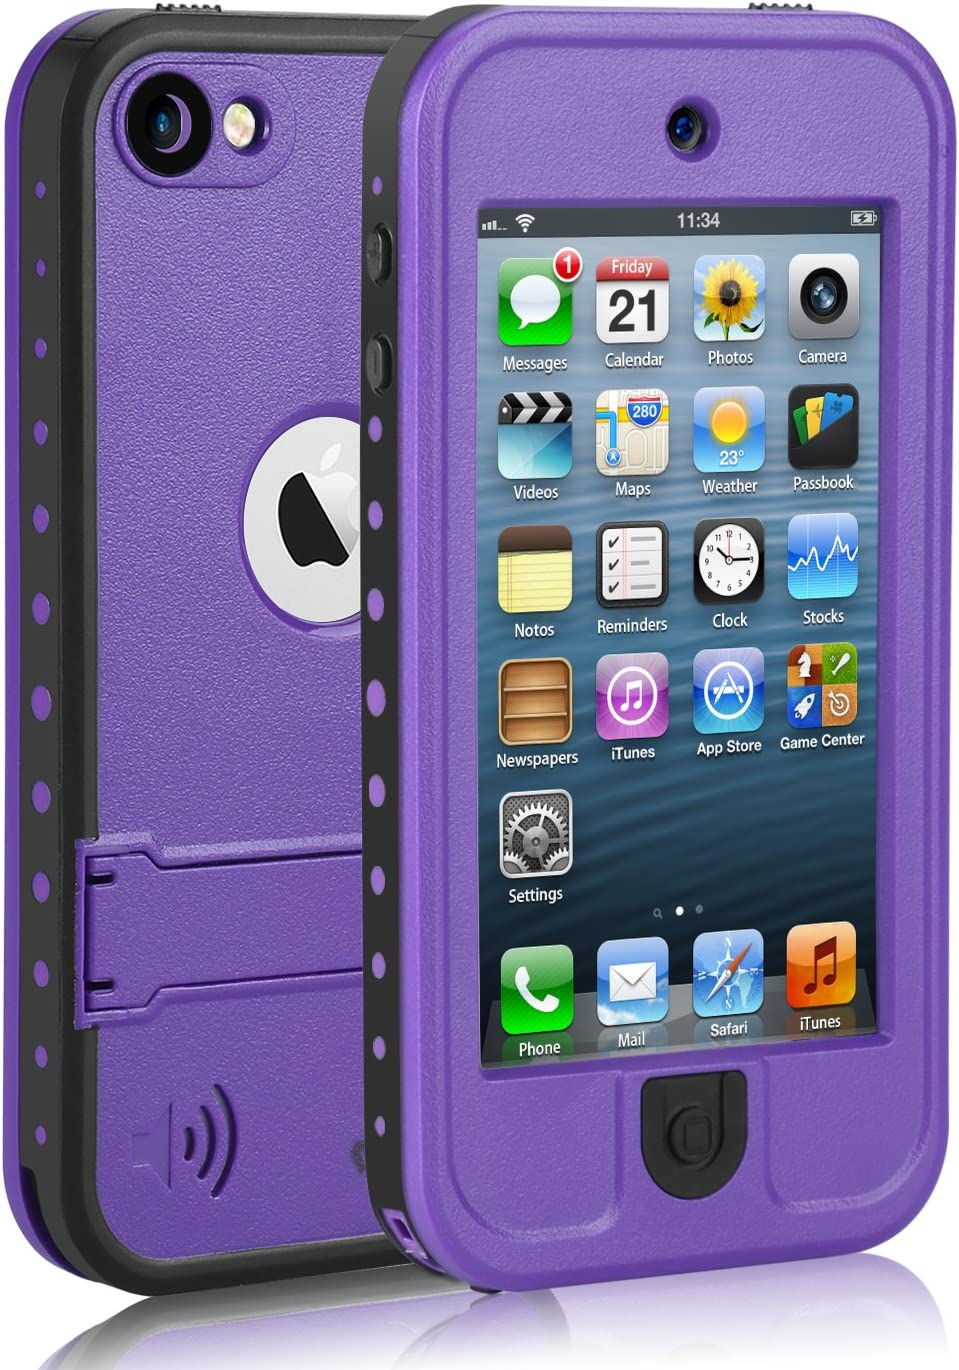 Waterproof Case for iPod 7 iPod 5 iPod 6, Meritcase Waterproof Shockproof Dirtproof Snowproof Case Cover with Kickstand for Apple iPod Touch 5th/6th/7th Generation for Swimming Snorkeling(Purple)